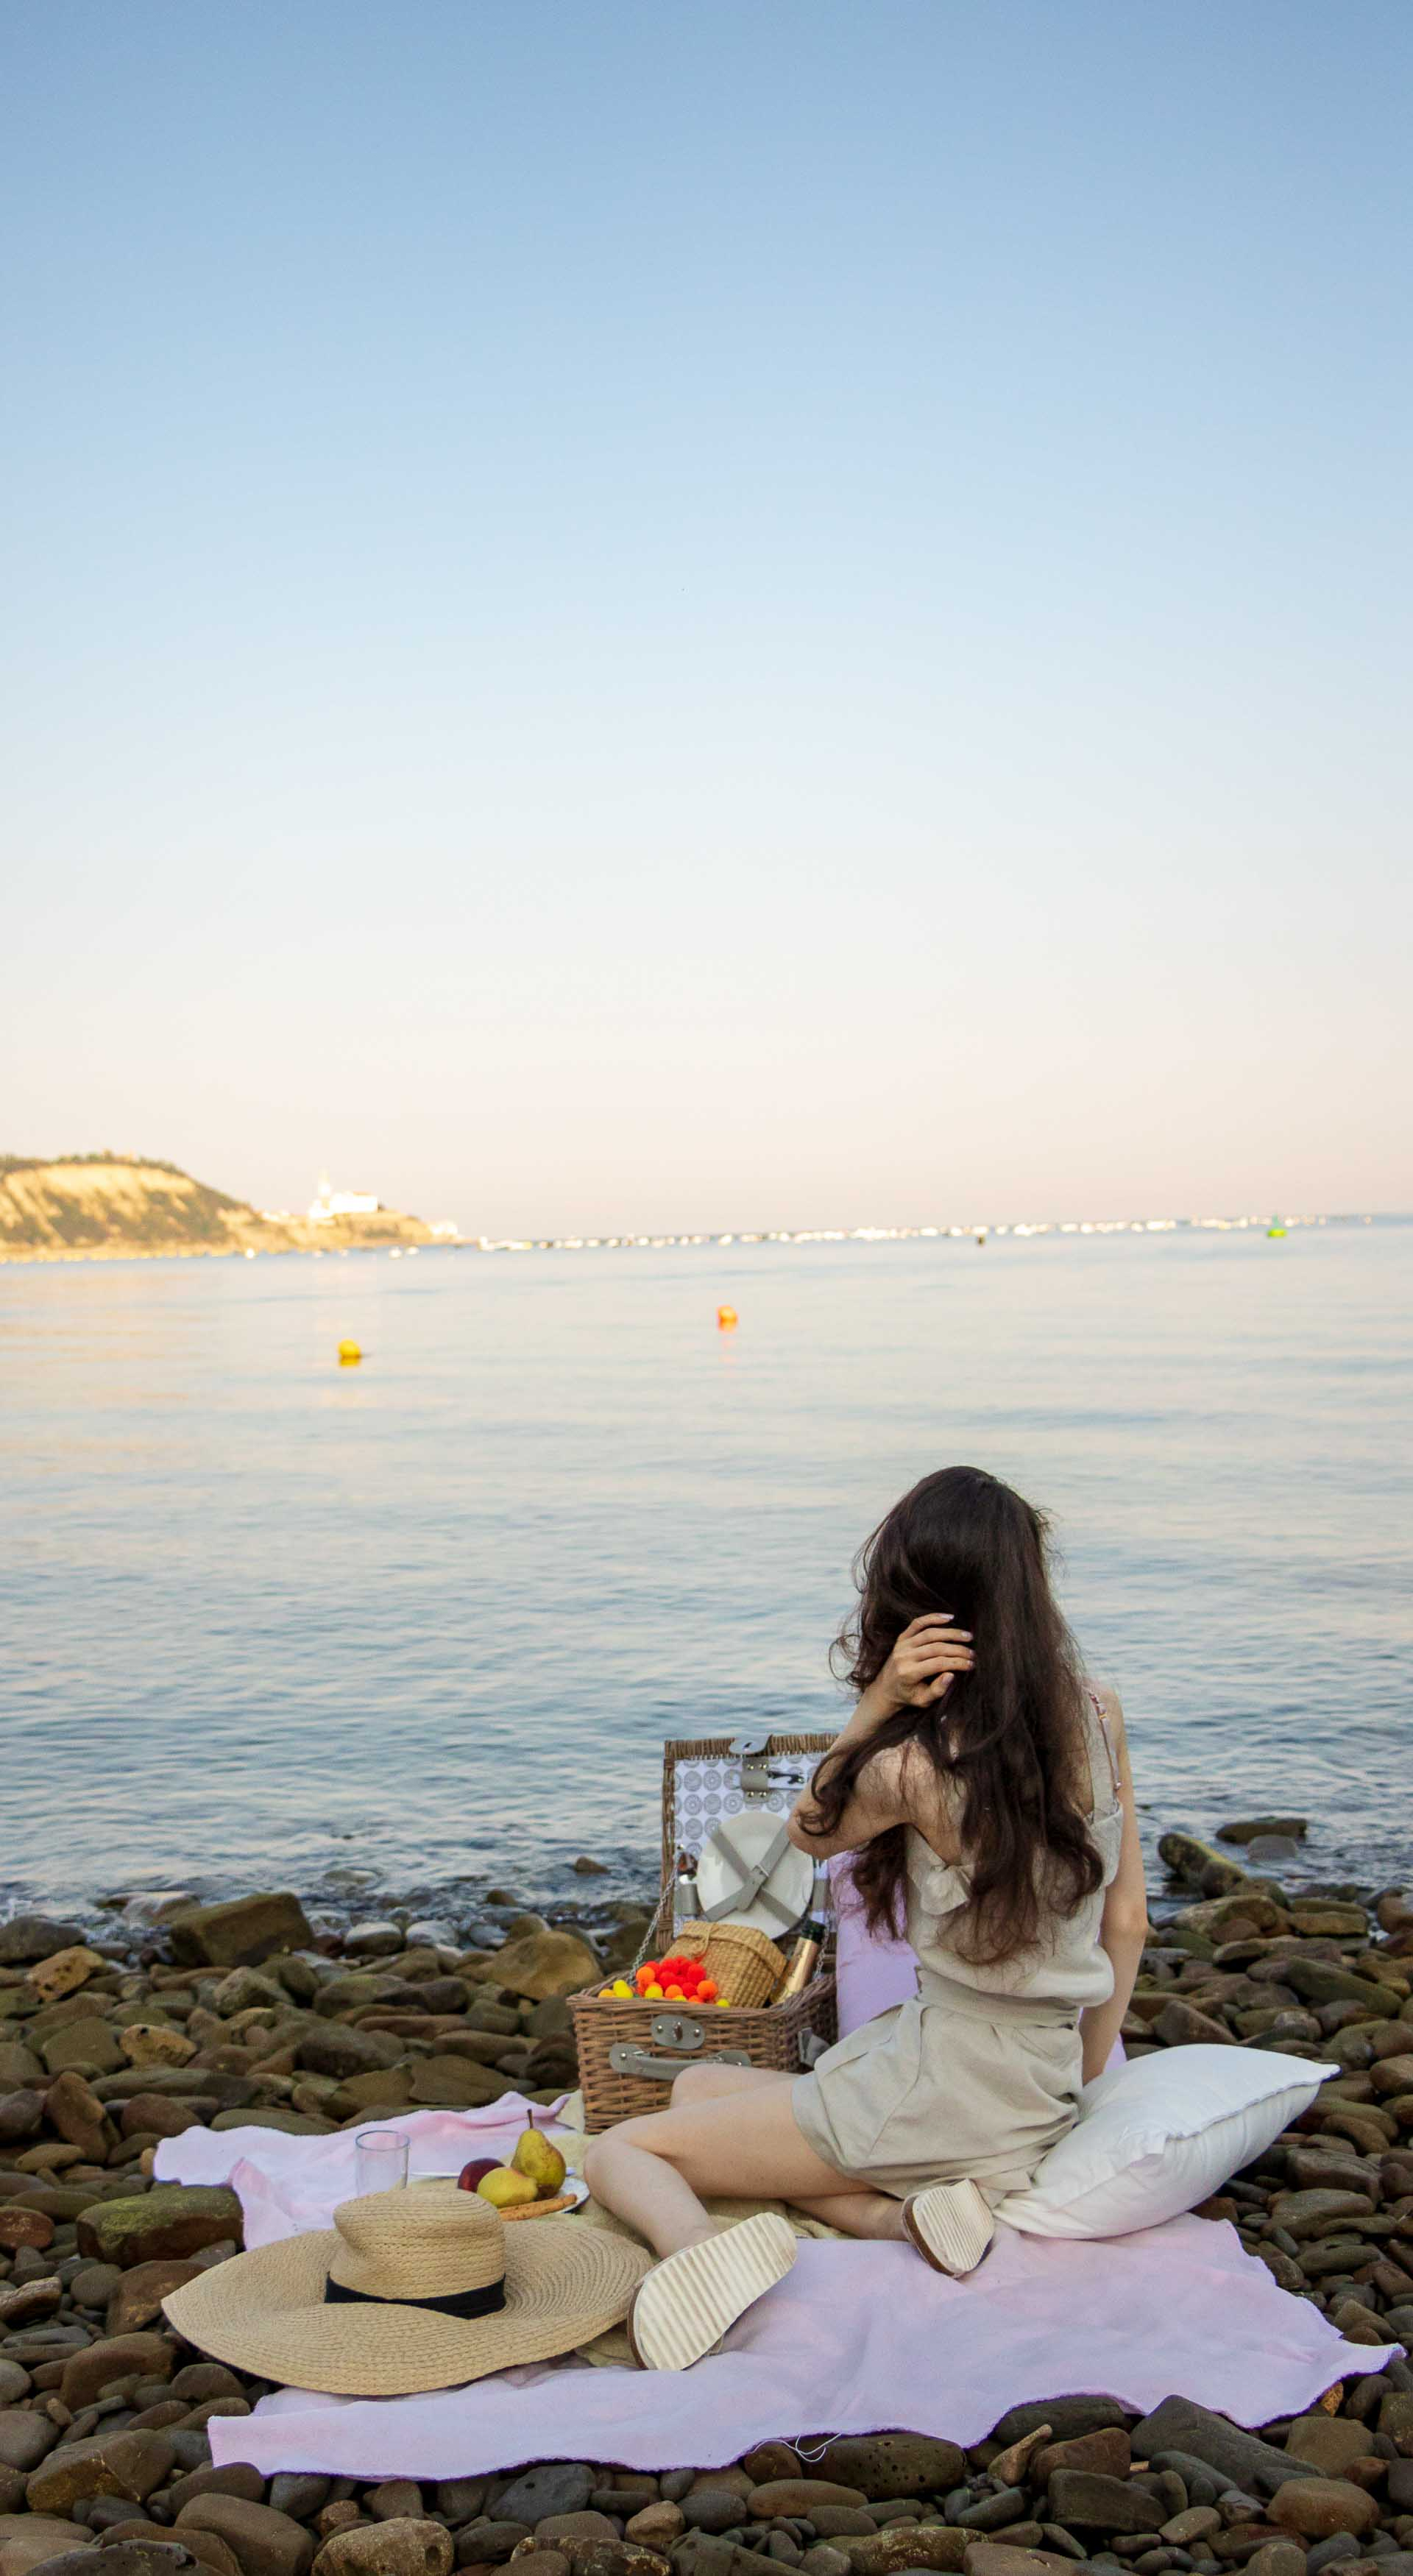 Slovenian Fashion Blogger Veronika Lipar of Brunette from Wall wearing beige linen crop top, paper bag linen shorts, luxe pool slides, large straw hat, Nannacay basket bag while sitting on a picnic blanket and watching the sea